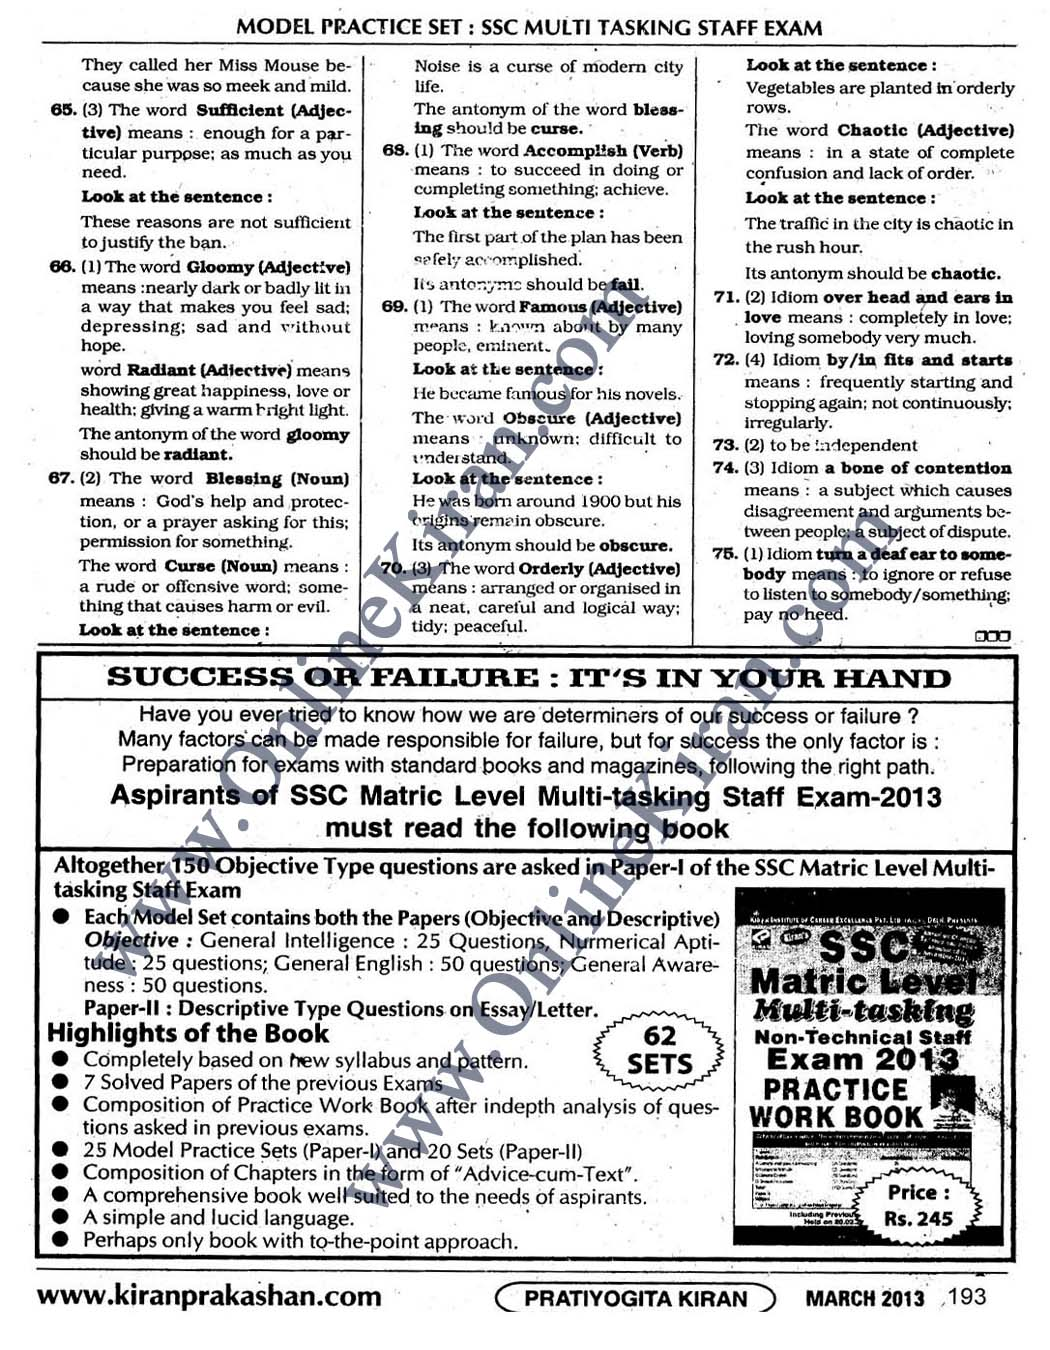 multitasking essay anissa diep english a blog funny multitasking  pratiyogita k for % off online book store k prakashan posted by pratiyogita k k prakashan at ssc multitasking essay writing